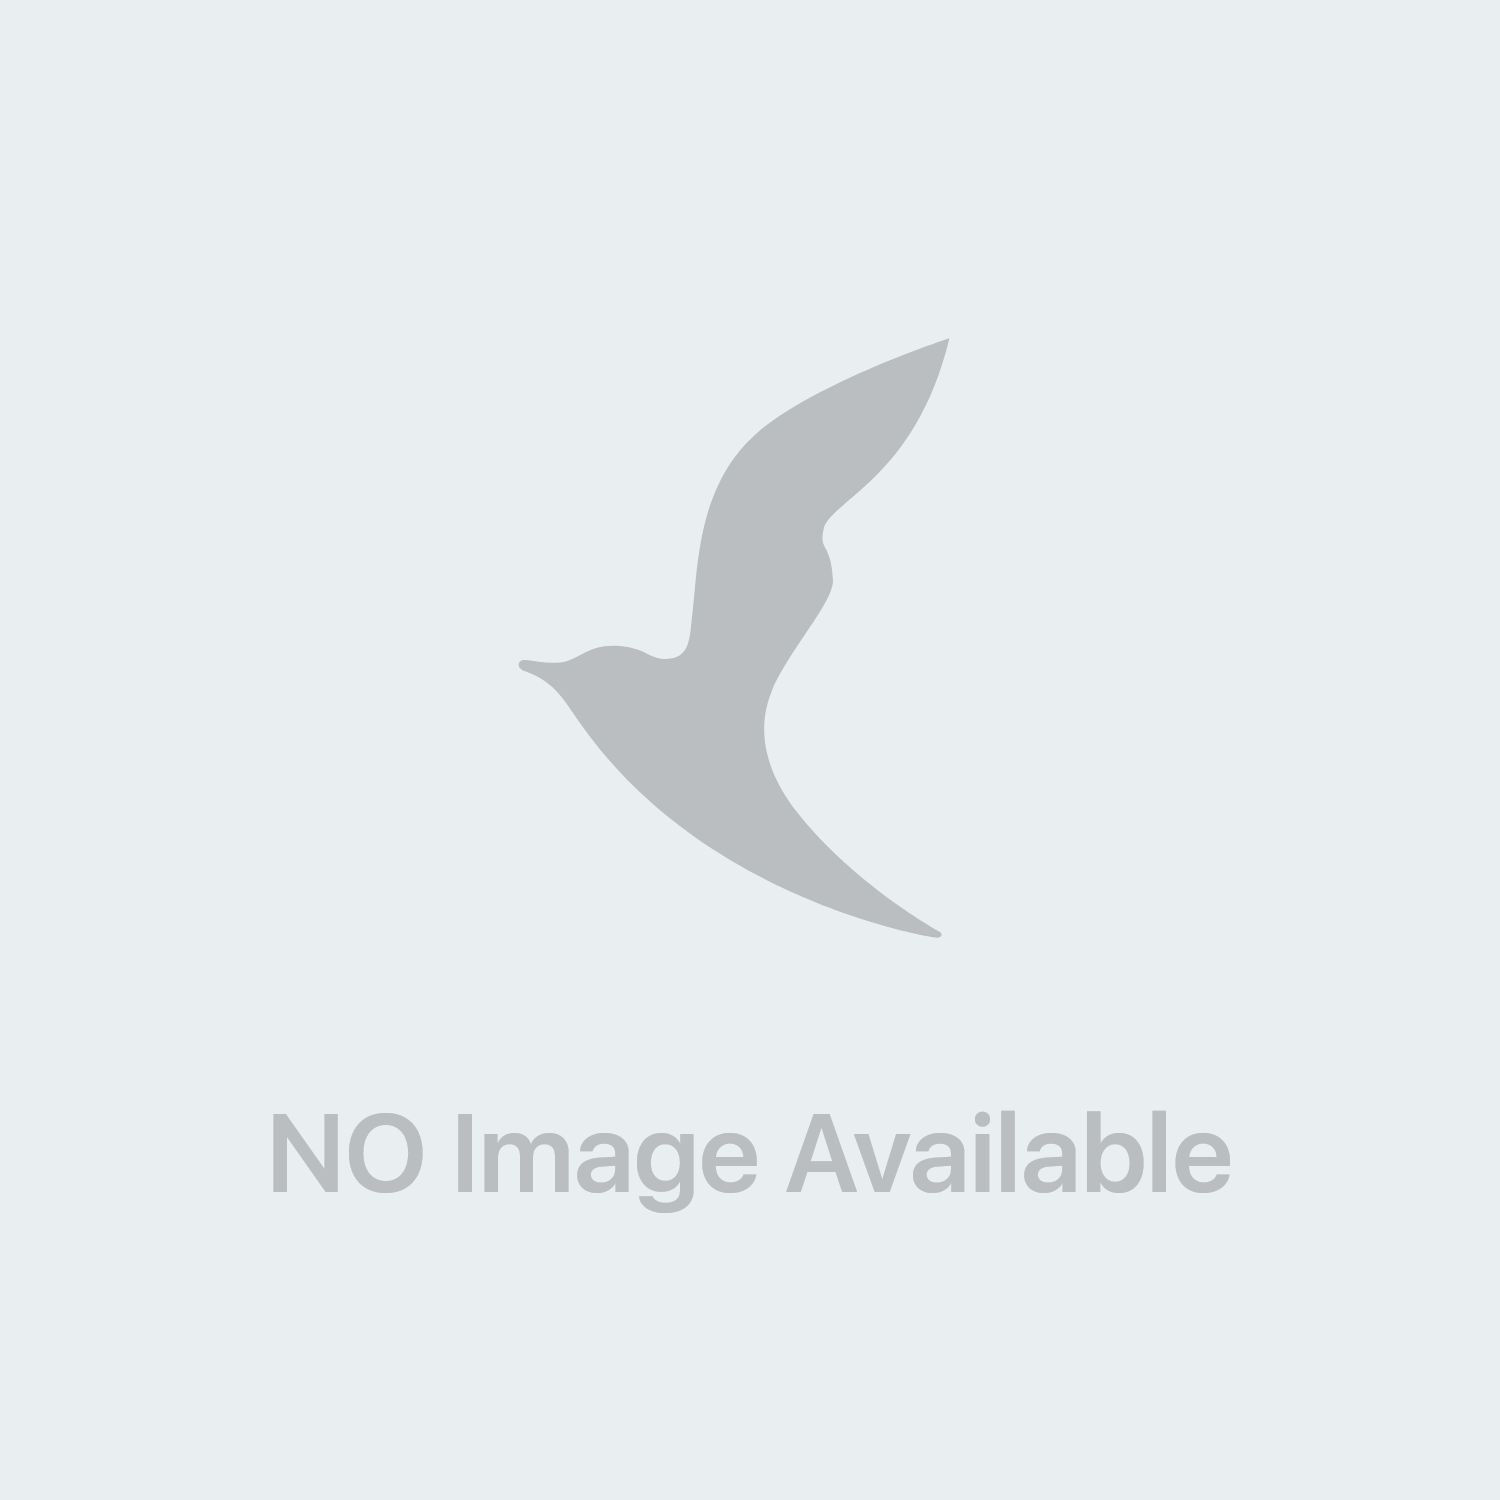 Royal Canine Exigent 35/30 Mangime Secco Gatto 2 Kg